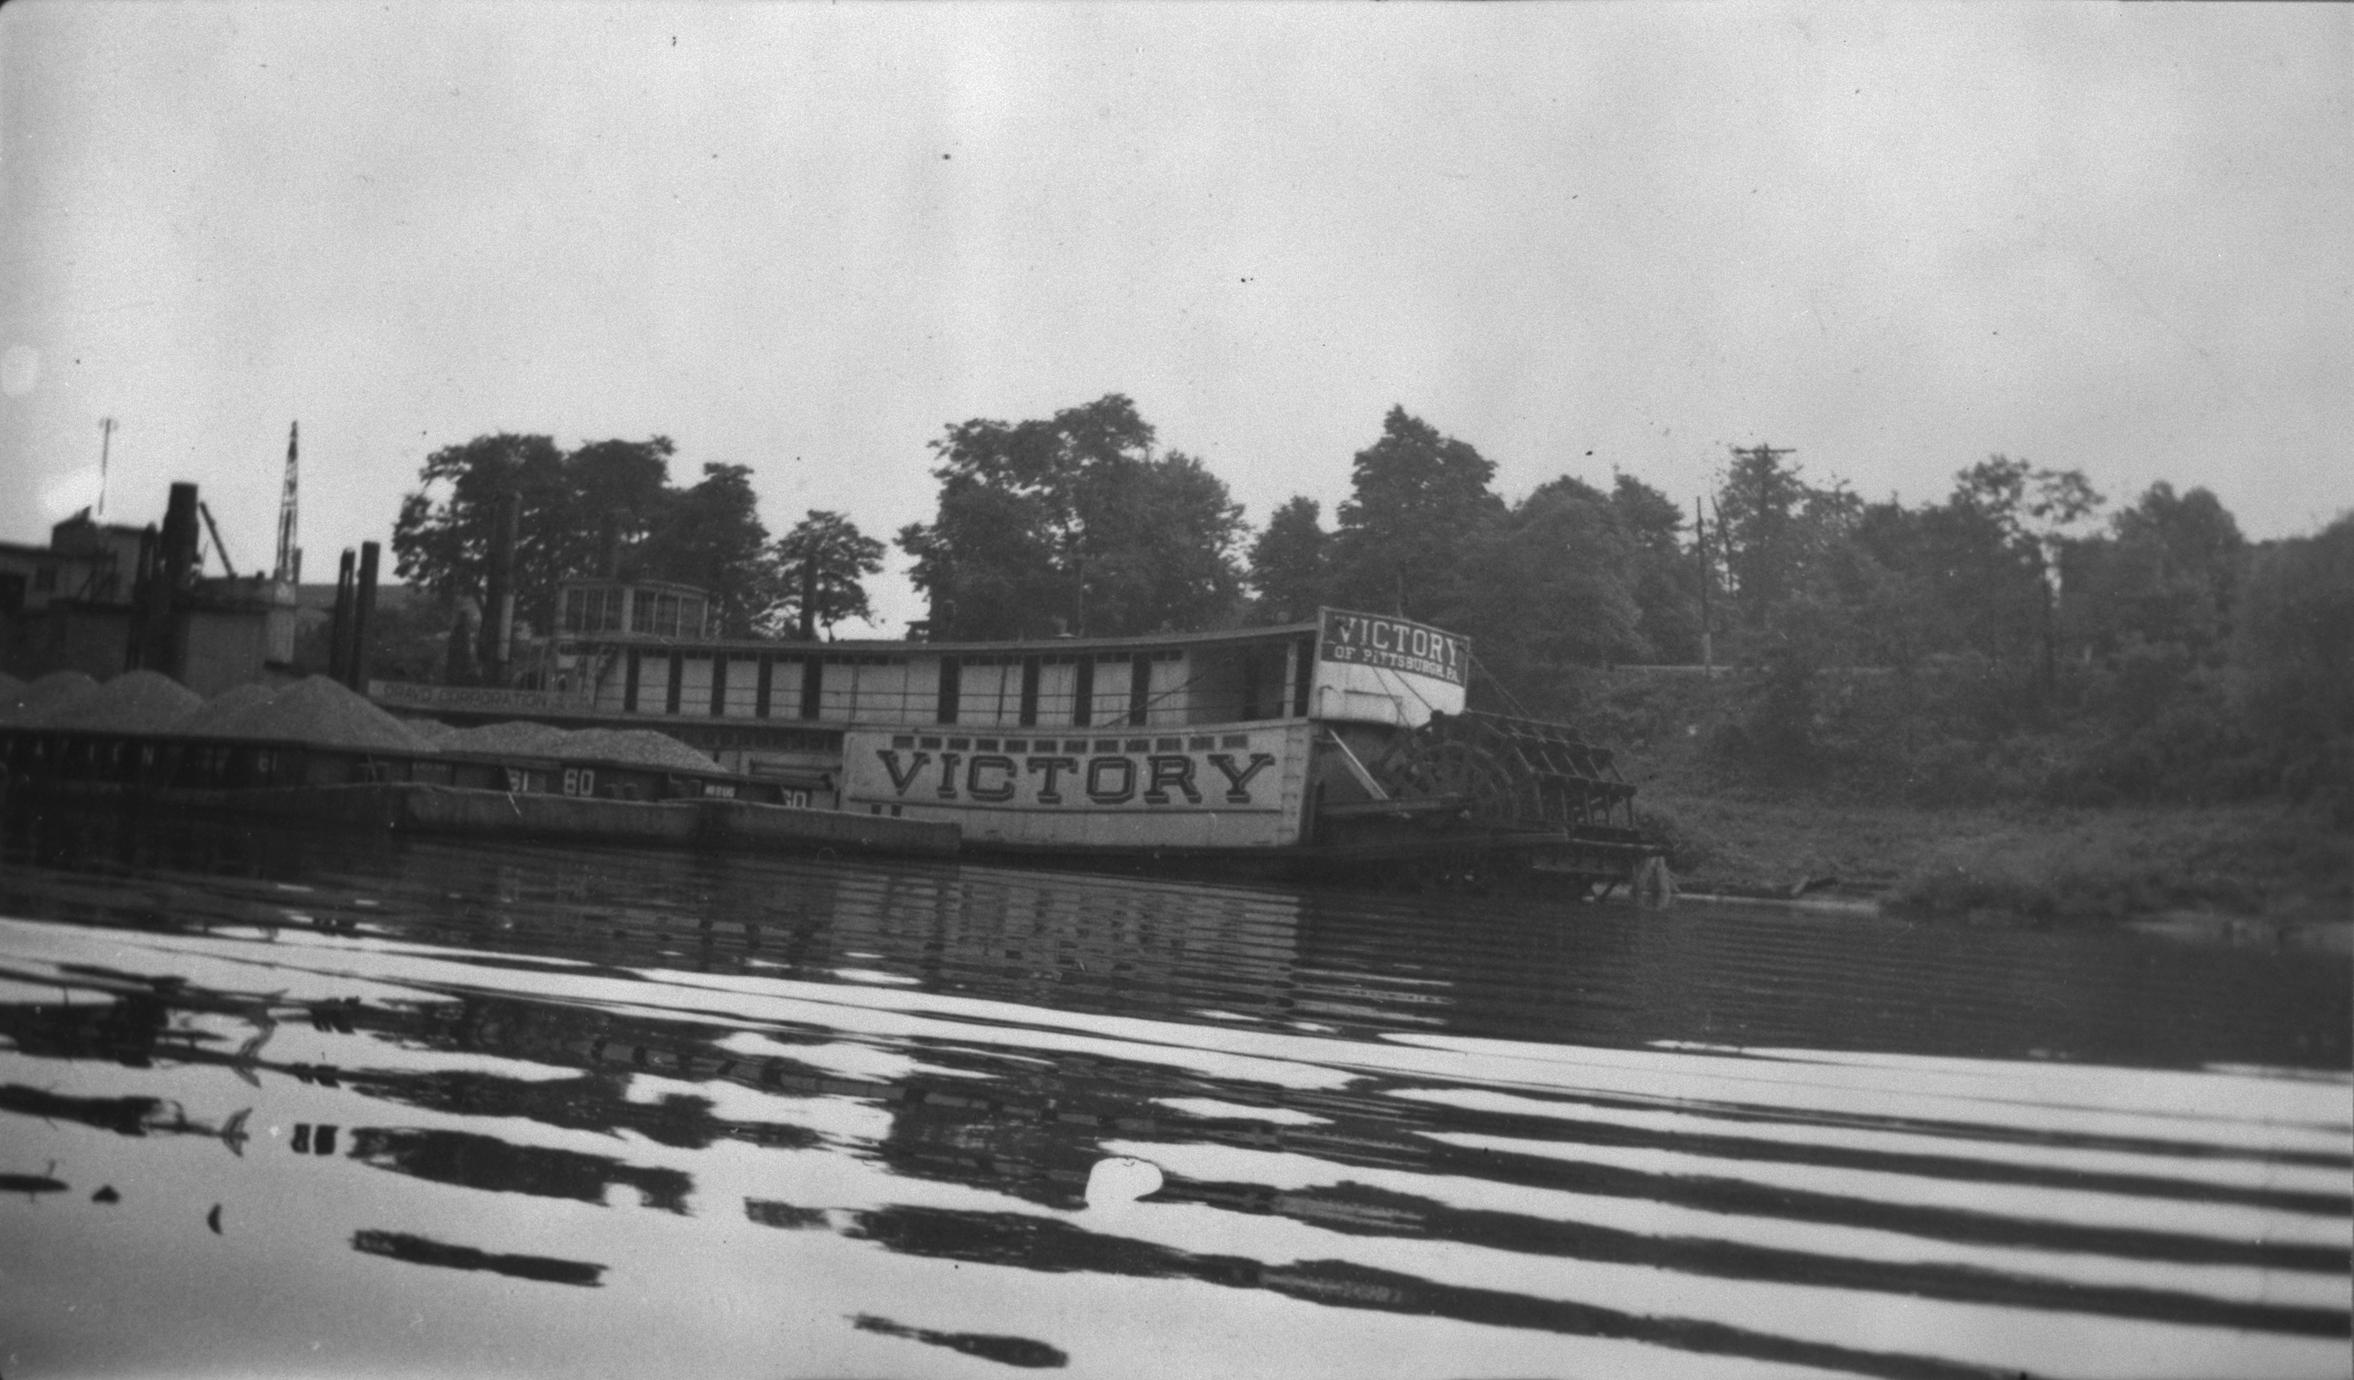 Victory (Towboat, 1919-1940)